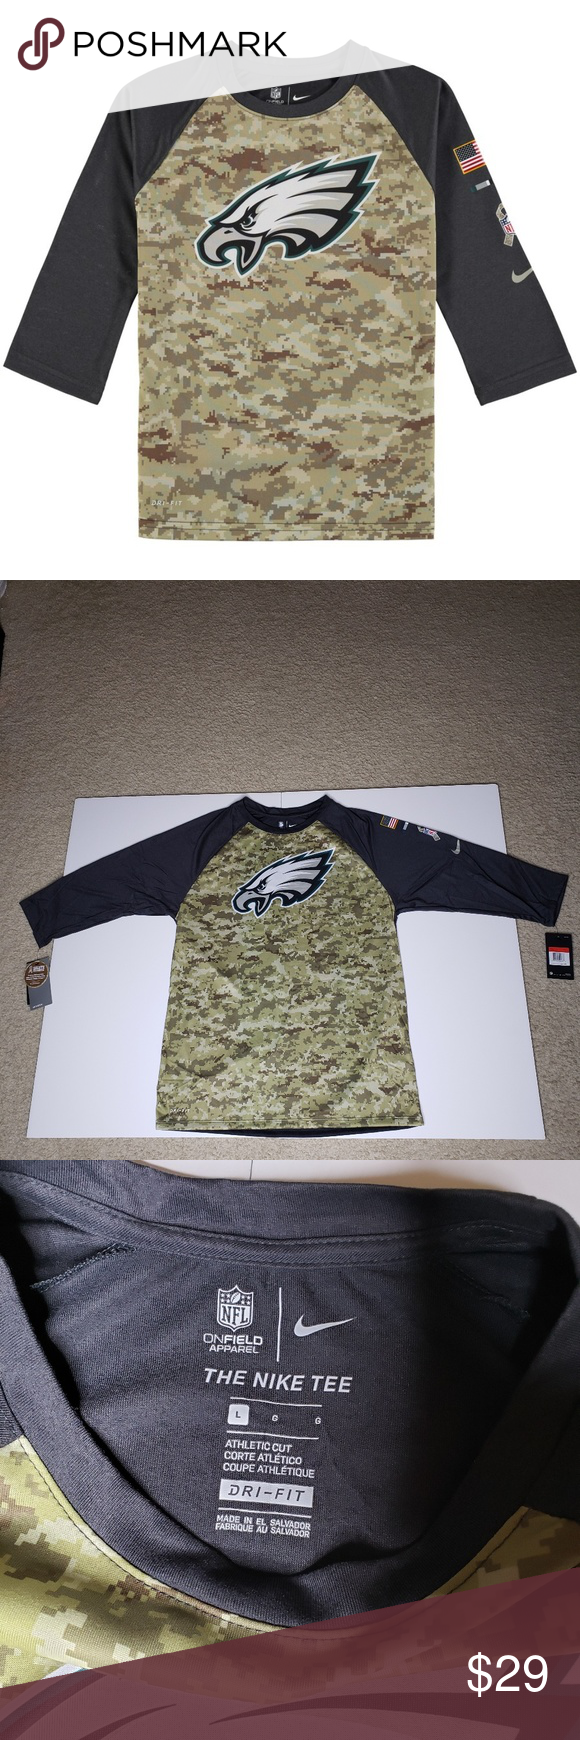 Philadelphia Eagles Salute to Service 3/4-Sleeve Philadelphia Eagles Salute to Service 3/4-Sleeve Raglan T-Shirt 875362-060 Sz L. Condition is New with tags, never worn, no rips or tears.  Smoke and pet free. Nike Shirts Tees - Short Sleeve #salutetoservice